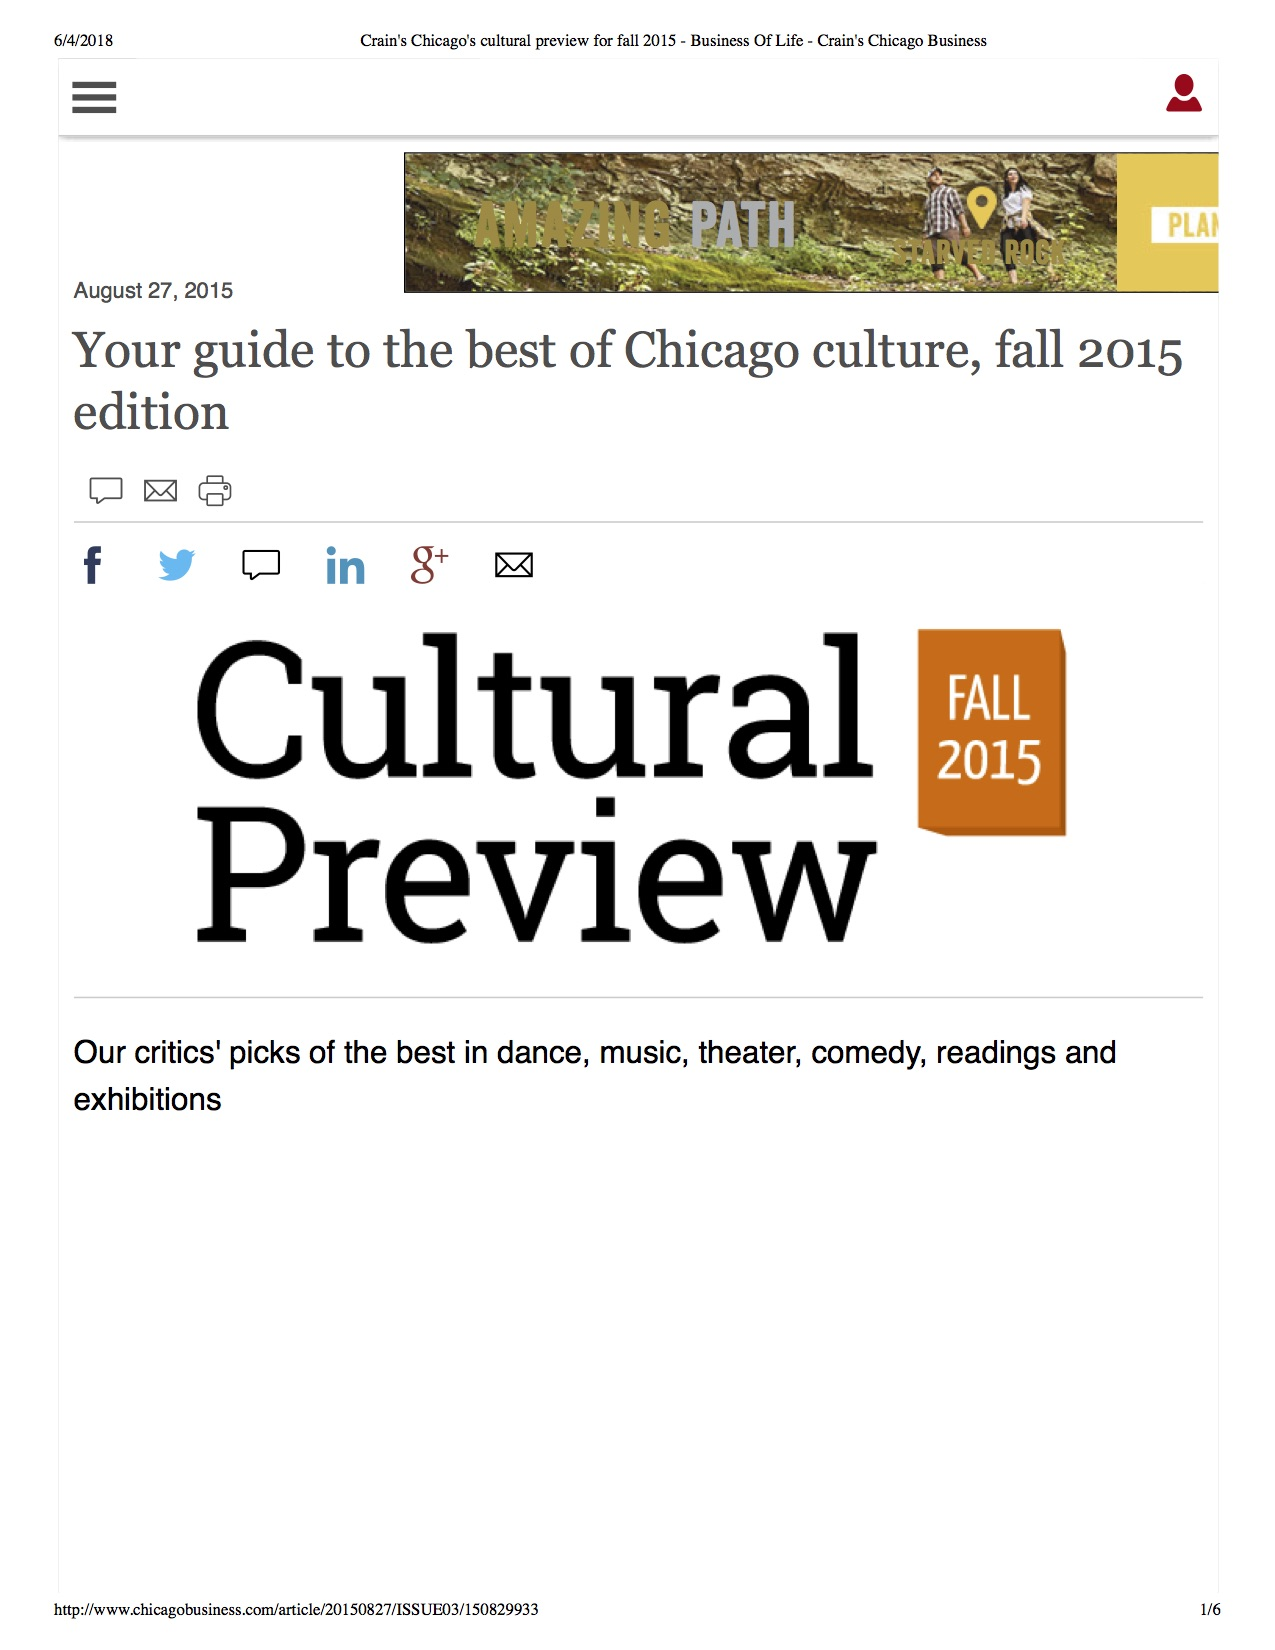 1. Crain's Chicago's cultural preview for fall 2015 - Business Of Life - Crain's Chicago Business.jpg